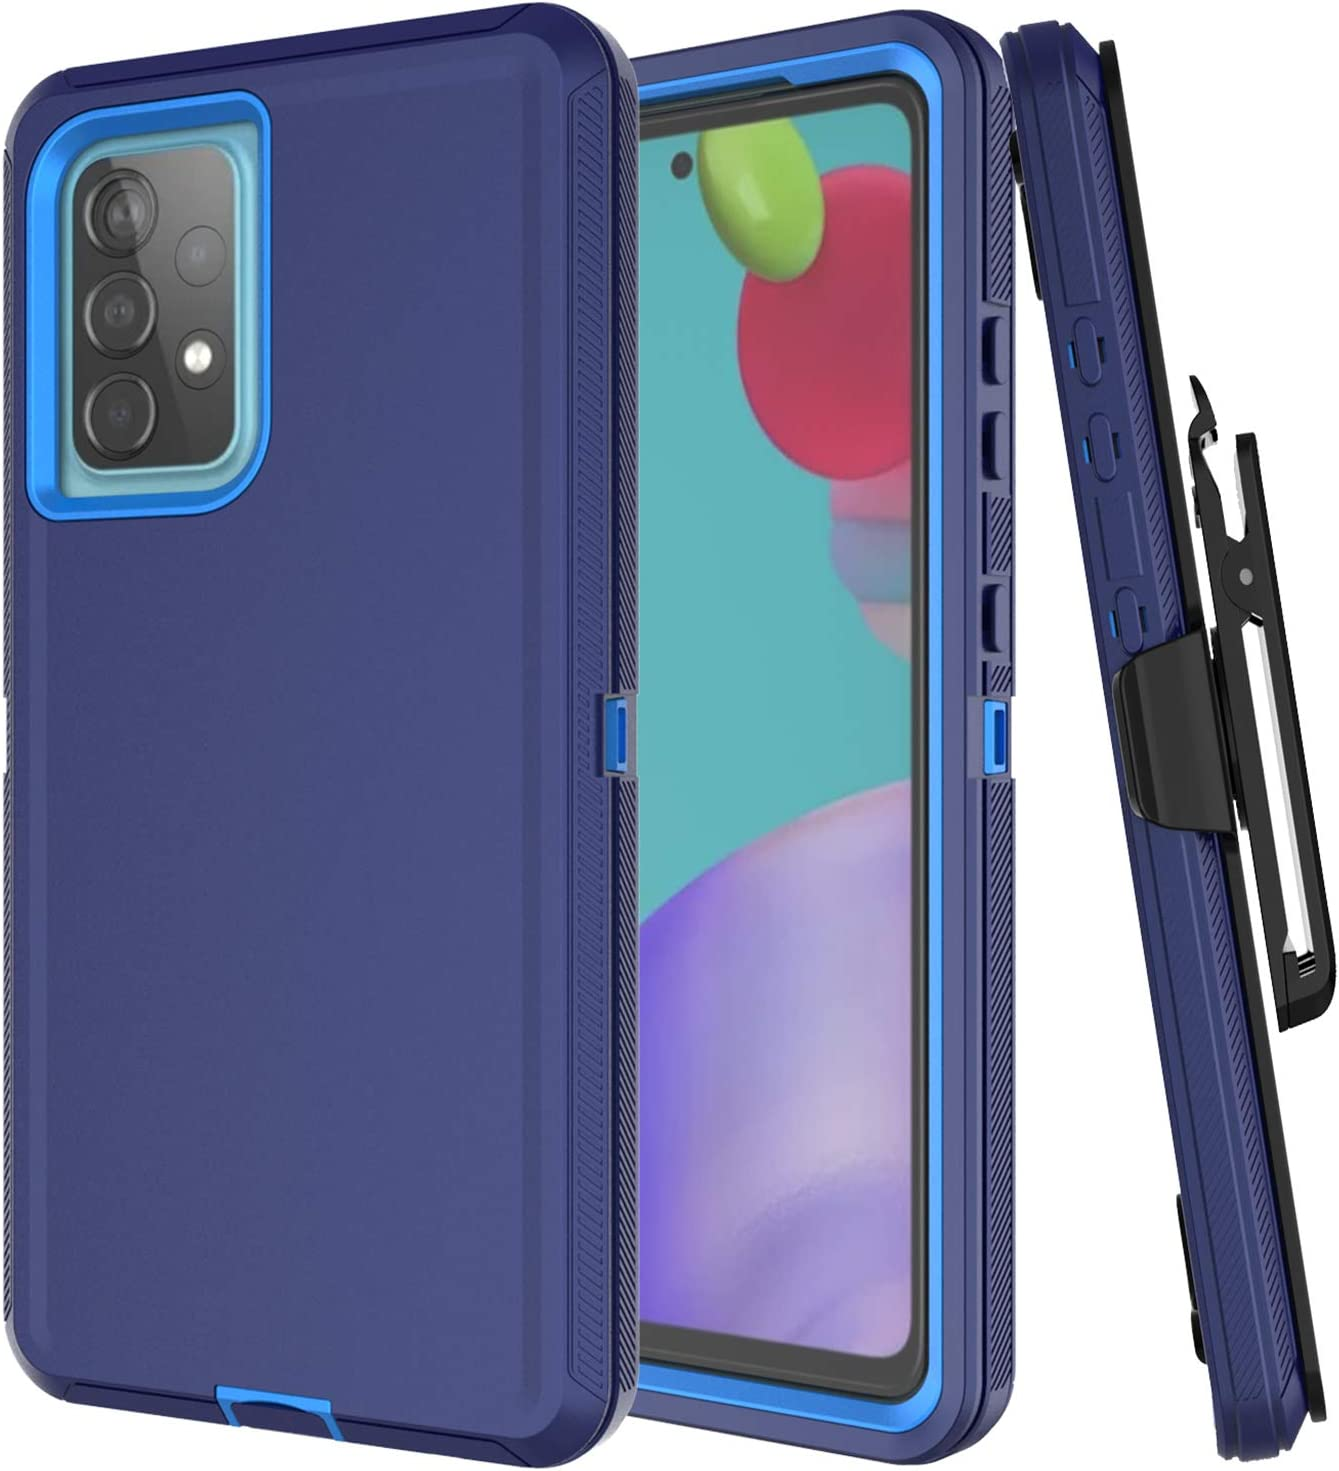 Aimoll-88 Galaxy A52 5G Case [US Version], with Screen Protector Heavy Duty Cover for Samsung A52 5G Case Belt Clip Hybrid Shockproof Drop Protection Holster for Samsung Galaxy A52 5G (Navy)